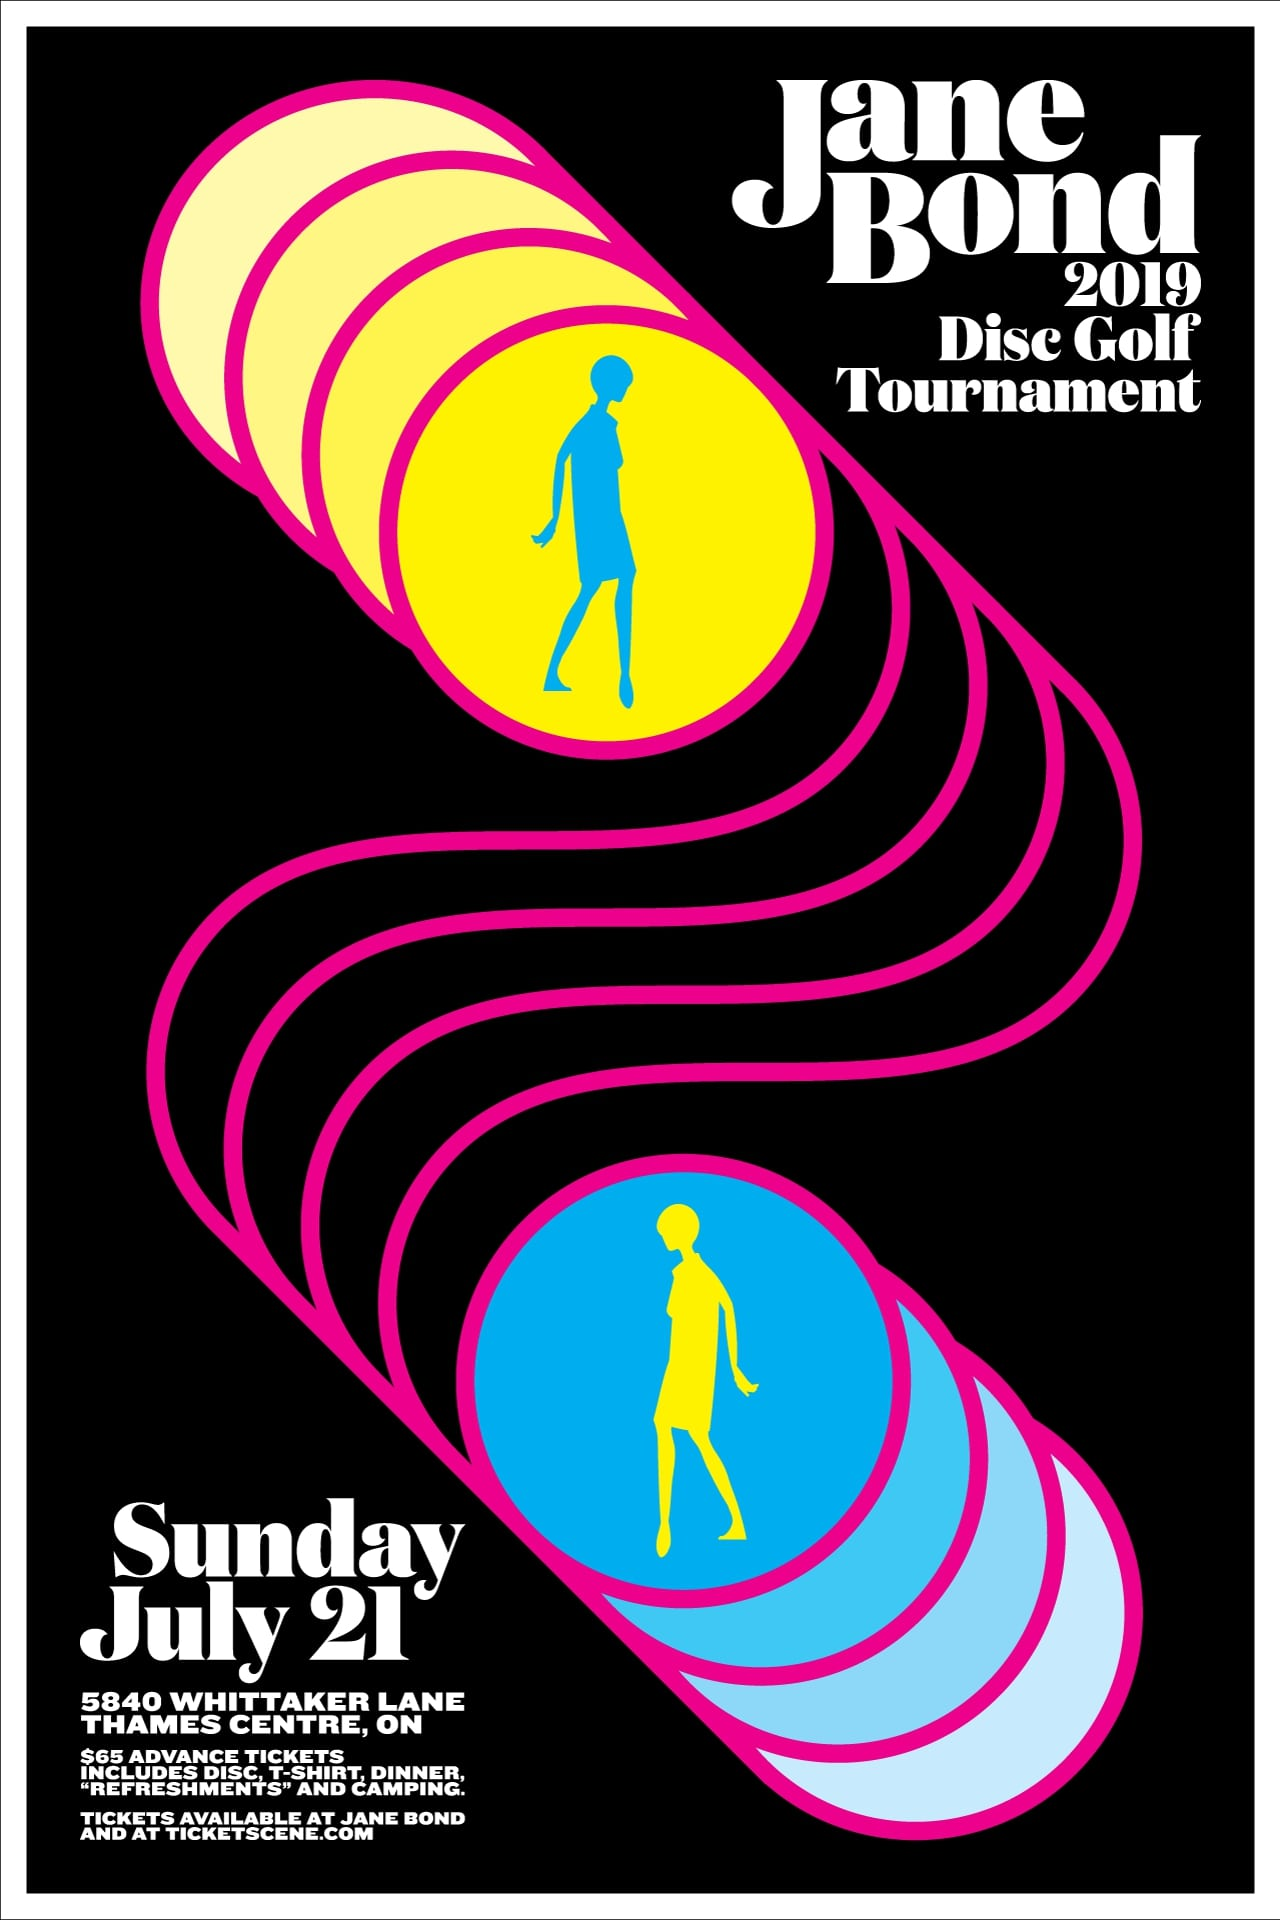 17th Annual Jane Bond Disc Golf Tournament